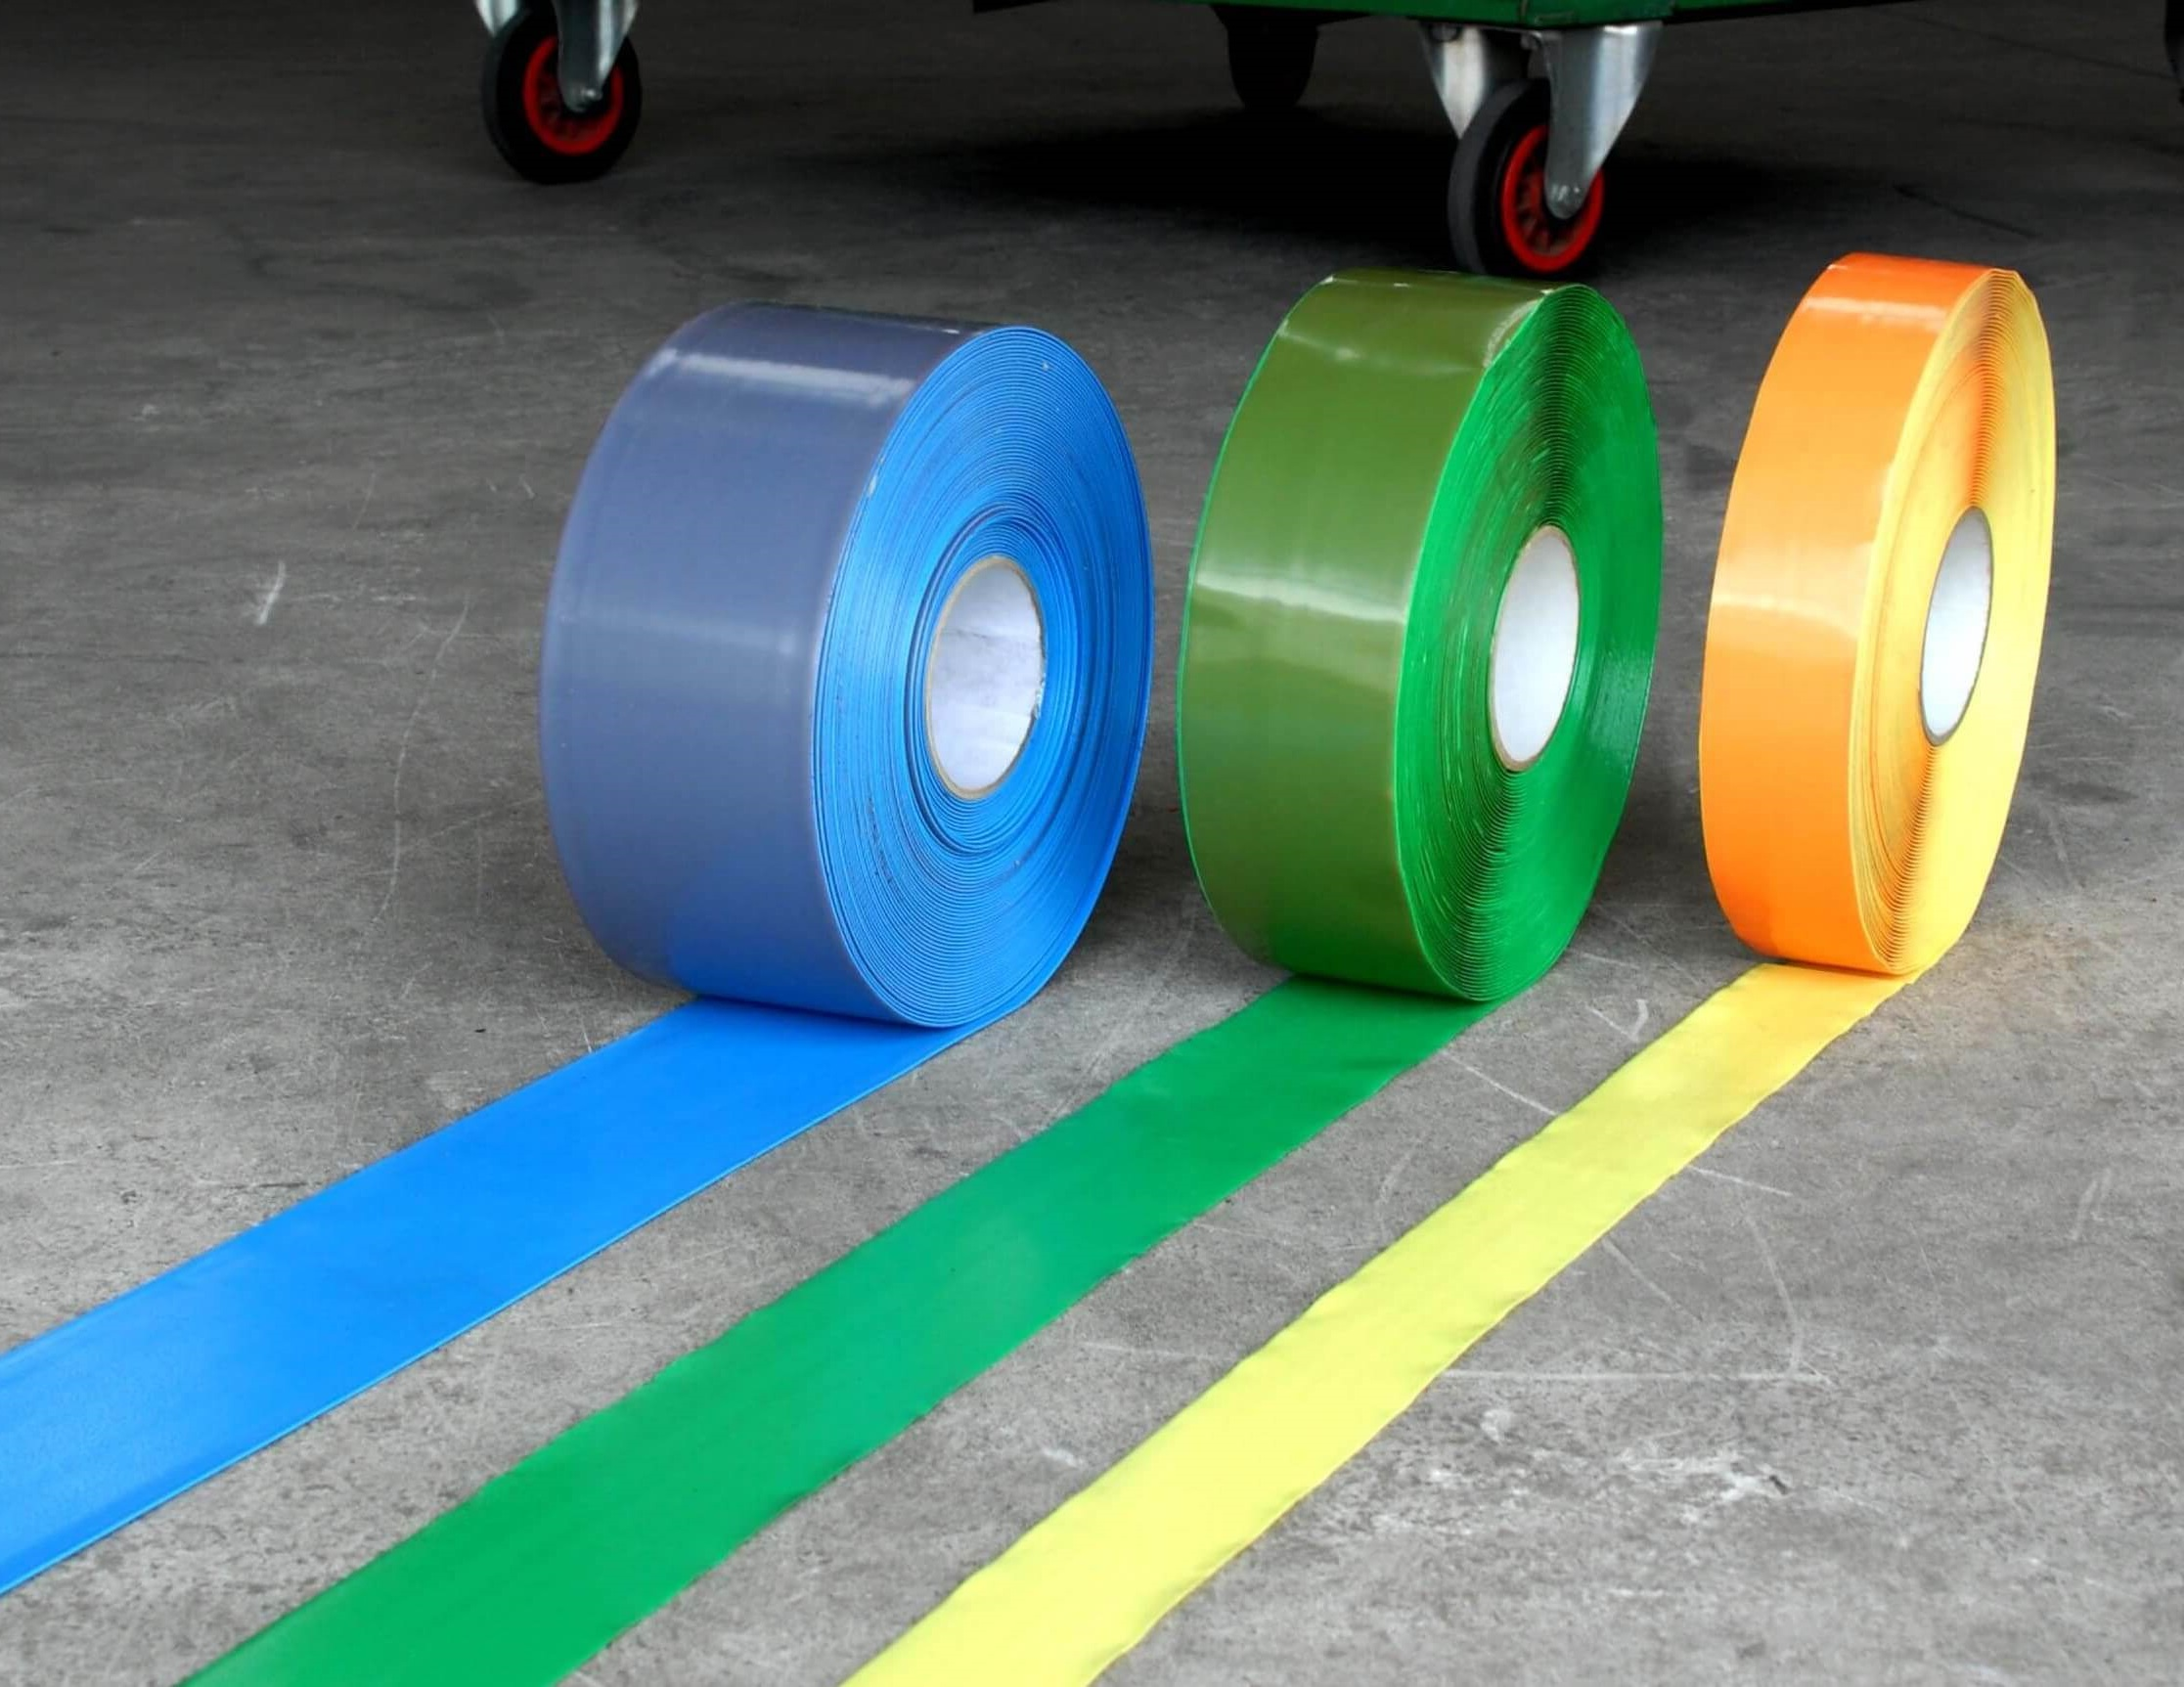 STRATA's Heavy Duty Floor Marking Tapes offer clear signage solutions